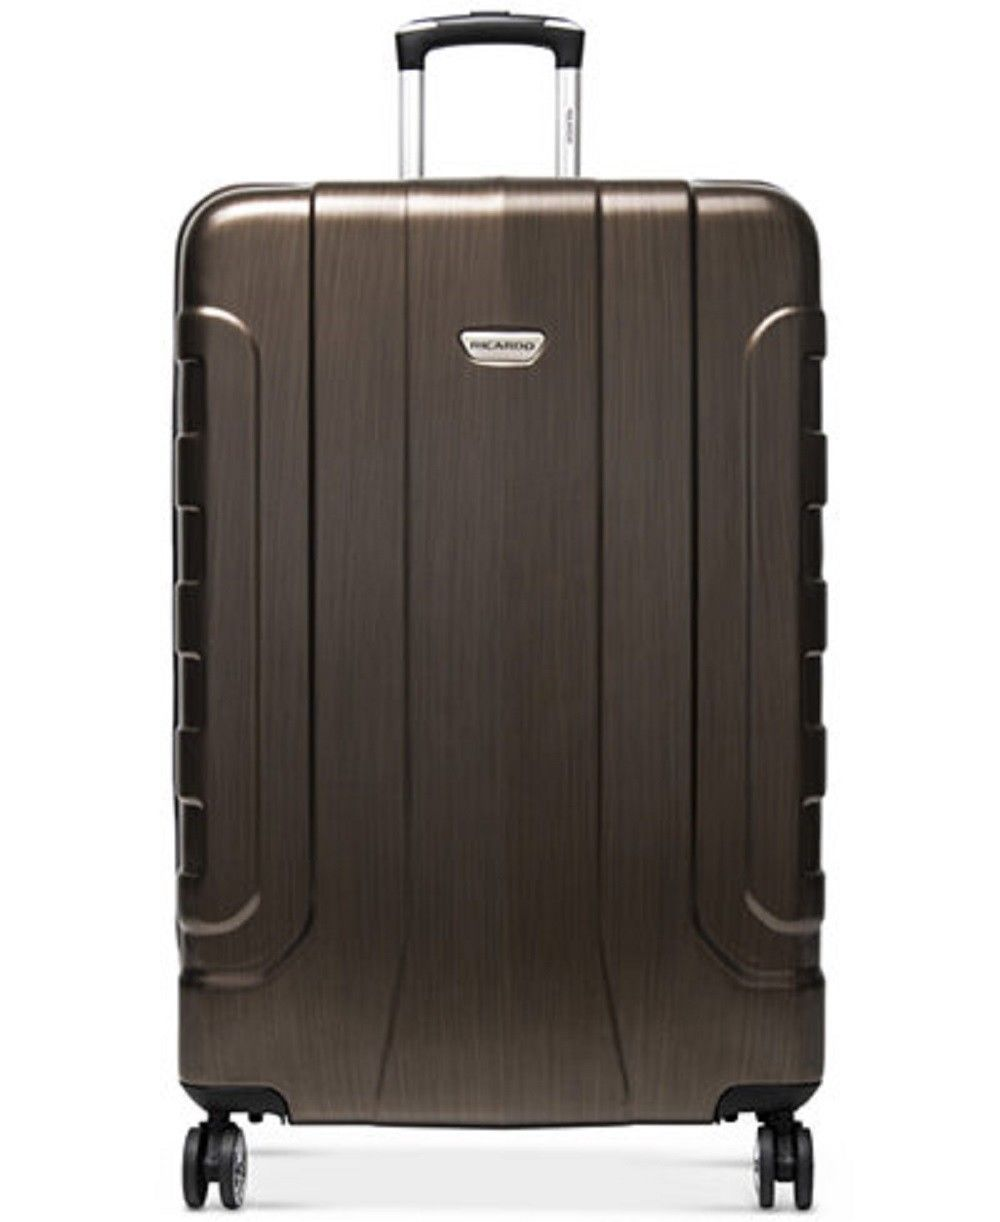 "$400 New Ricardo Pacifica 29"" Hardside Expandable Spinner Suitcase Luggage Brown"